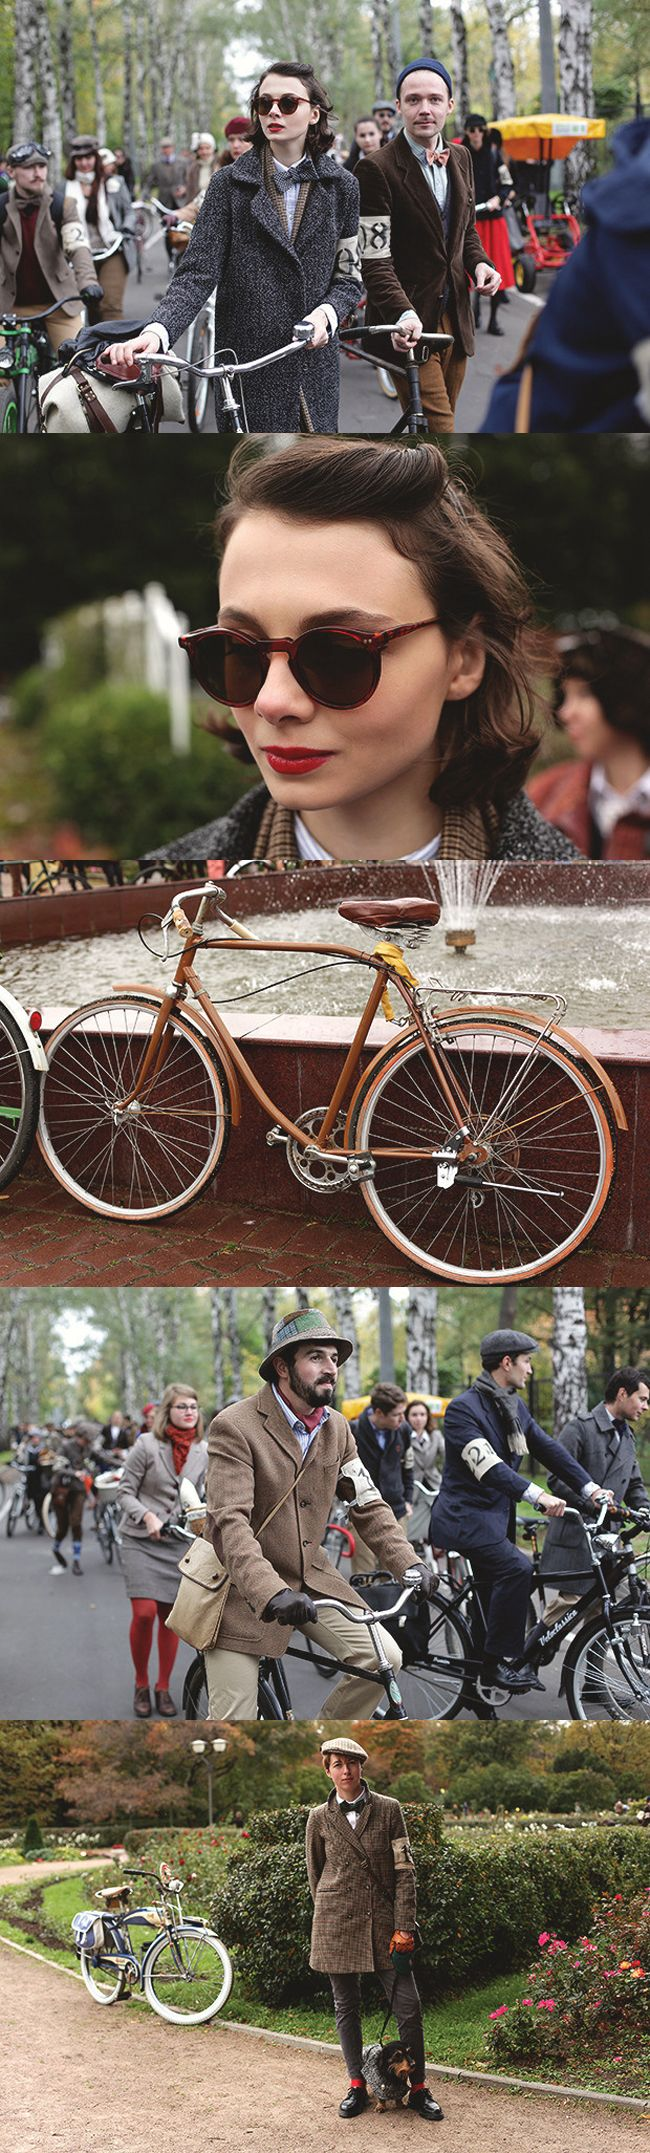 ~Tweed Run The Tweed Run is a group bicycle ride through the centre of London, in which the cyclists are expected to dress in traditional British cycling attire, particularly tweed plus four suits. Any bicycle is acceptable on the Tweed Run, but classic vintage bicycles are encouraged | The House of Beccaria